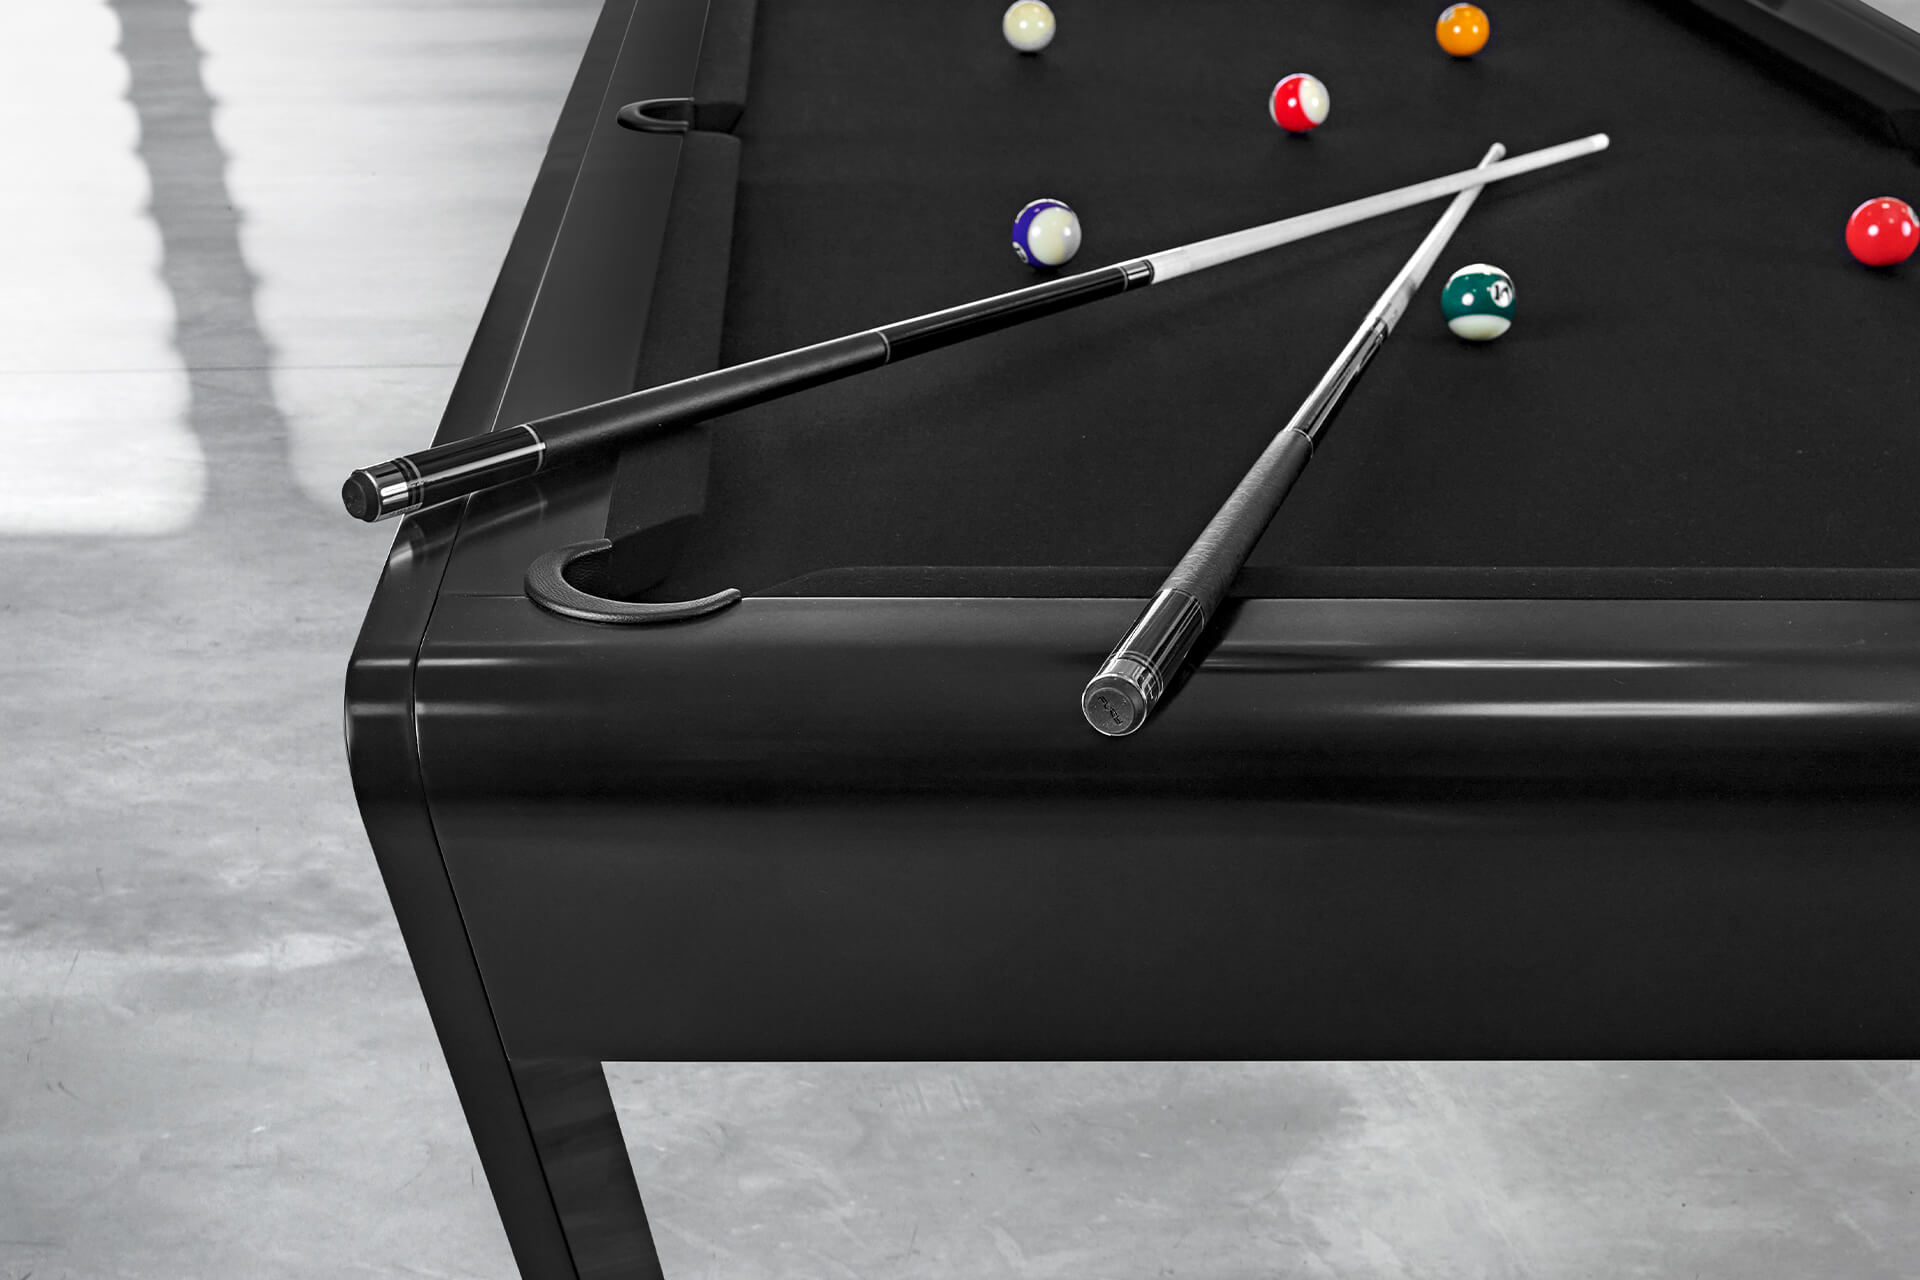 Luxury Billiard Table with high-end cues